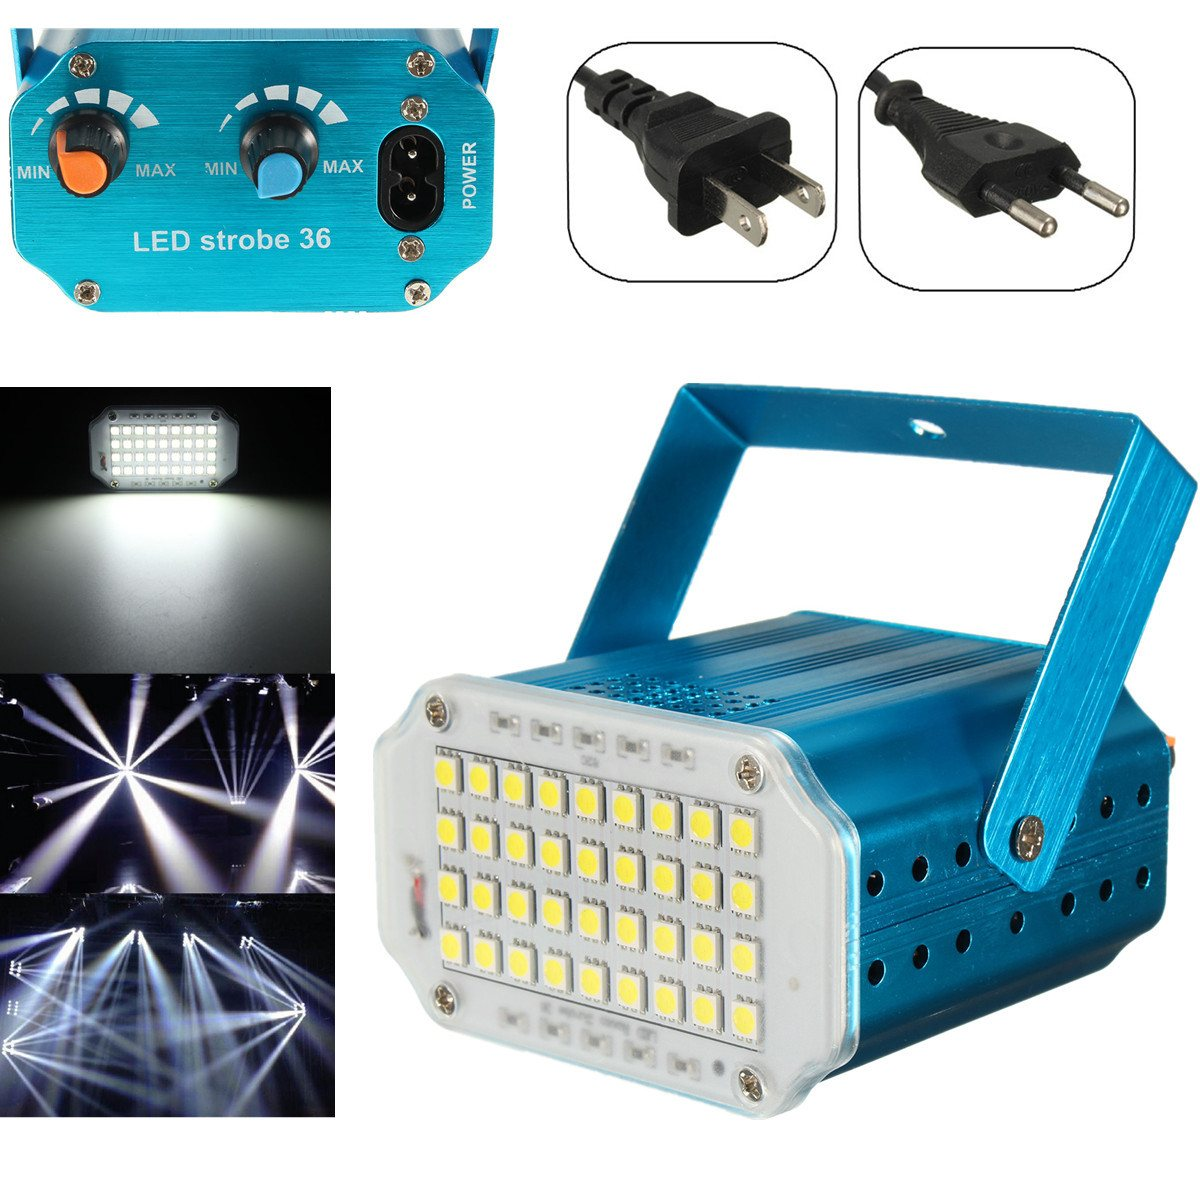 Adjustment LED RGB White Lighting Projector Laser Strobe Stage Light Effect DJ Disco Party Club KTV Night Lamp Bulb US EU Plug transctego laser disco light stage led lumiere 48 in 1 rgb projector dj party sound lights mini laser lamp strobe bar lamps page 6